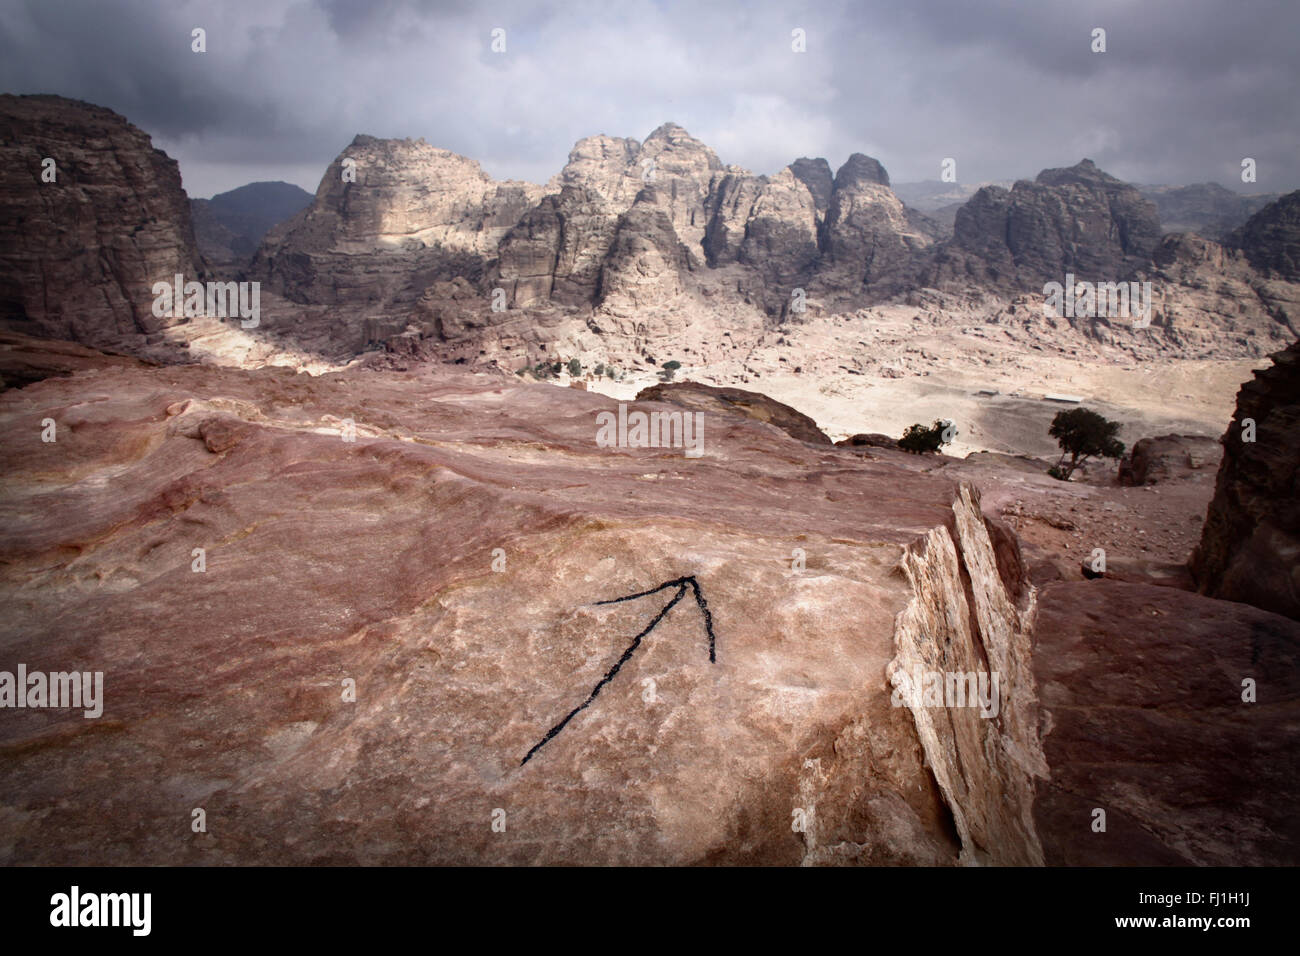 Arrow painted on rock shows a way on Jebel al-Madhbah ,  a mountain on the site of Petra, Jordan - Stock Image